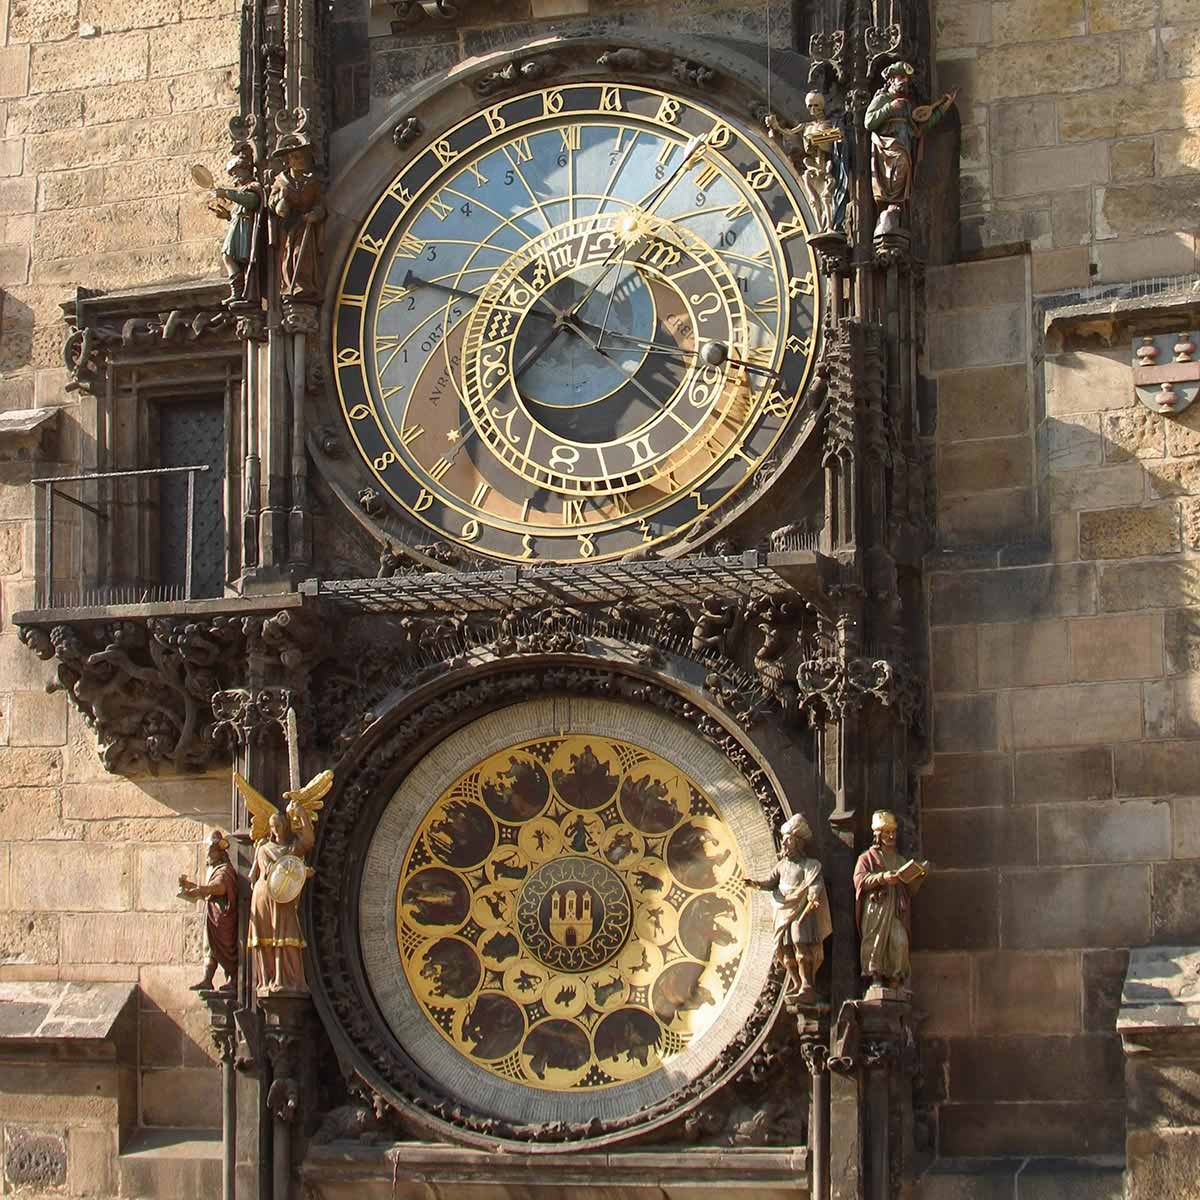 6. Astronomical Clock